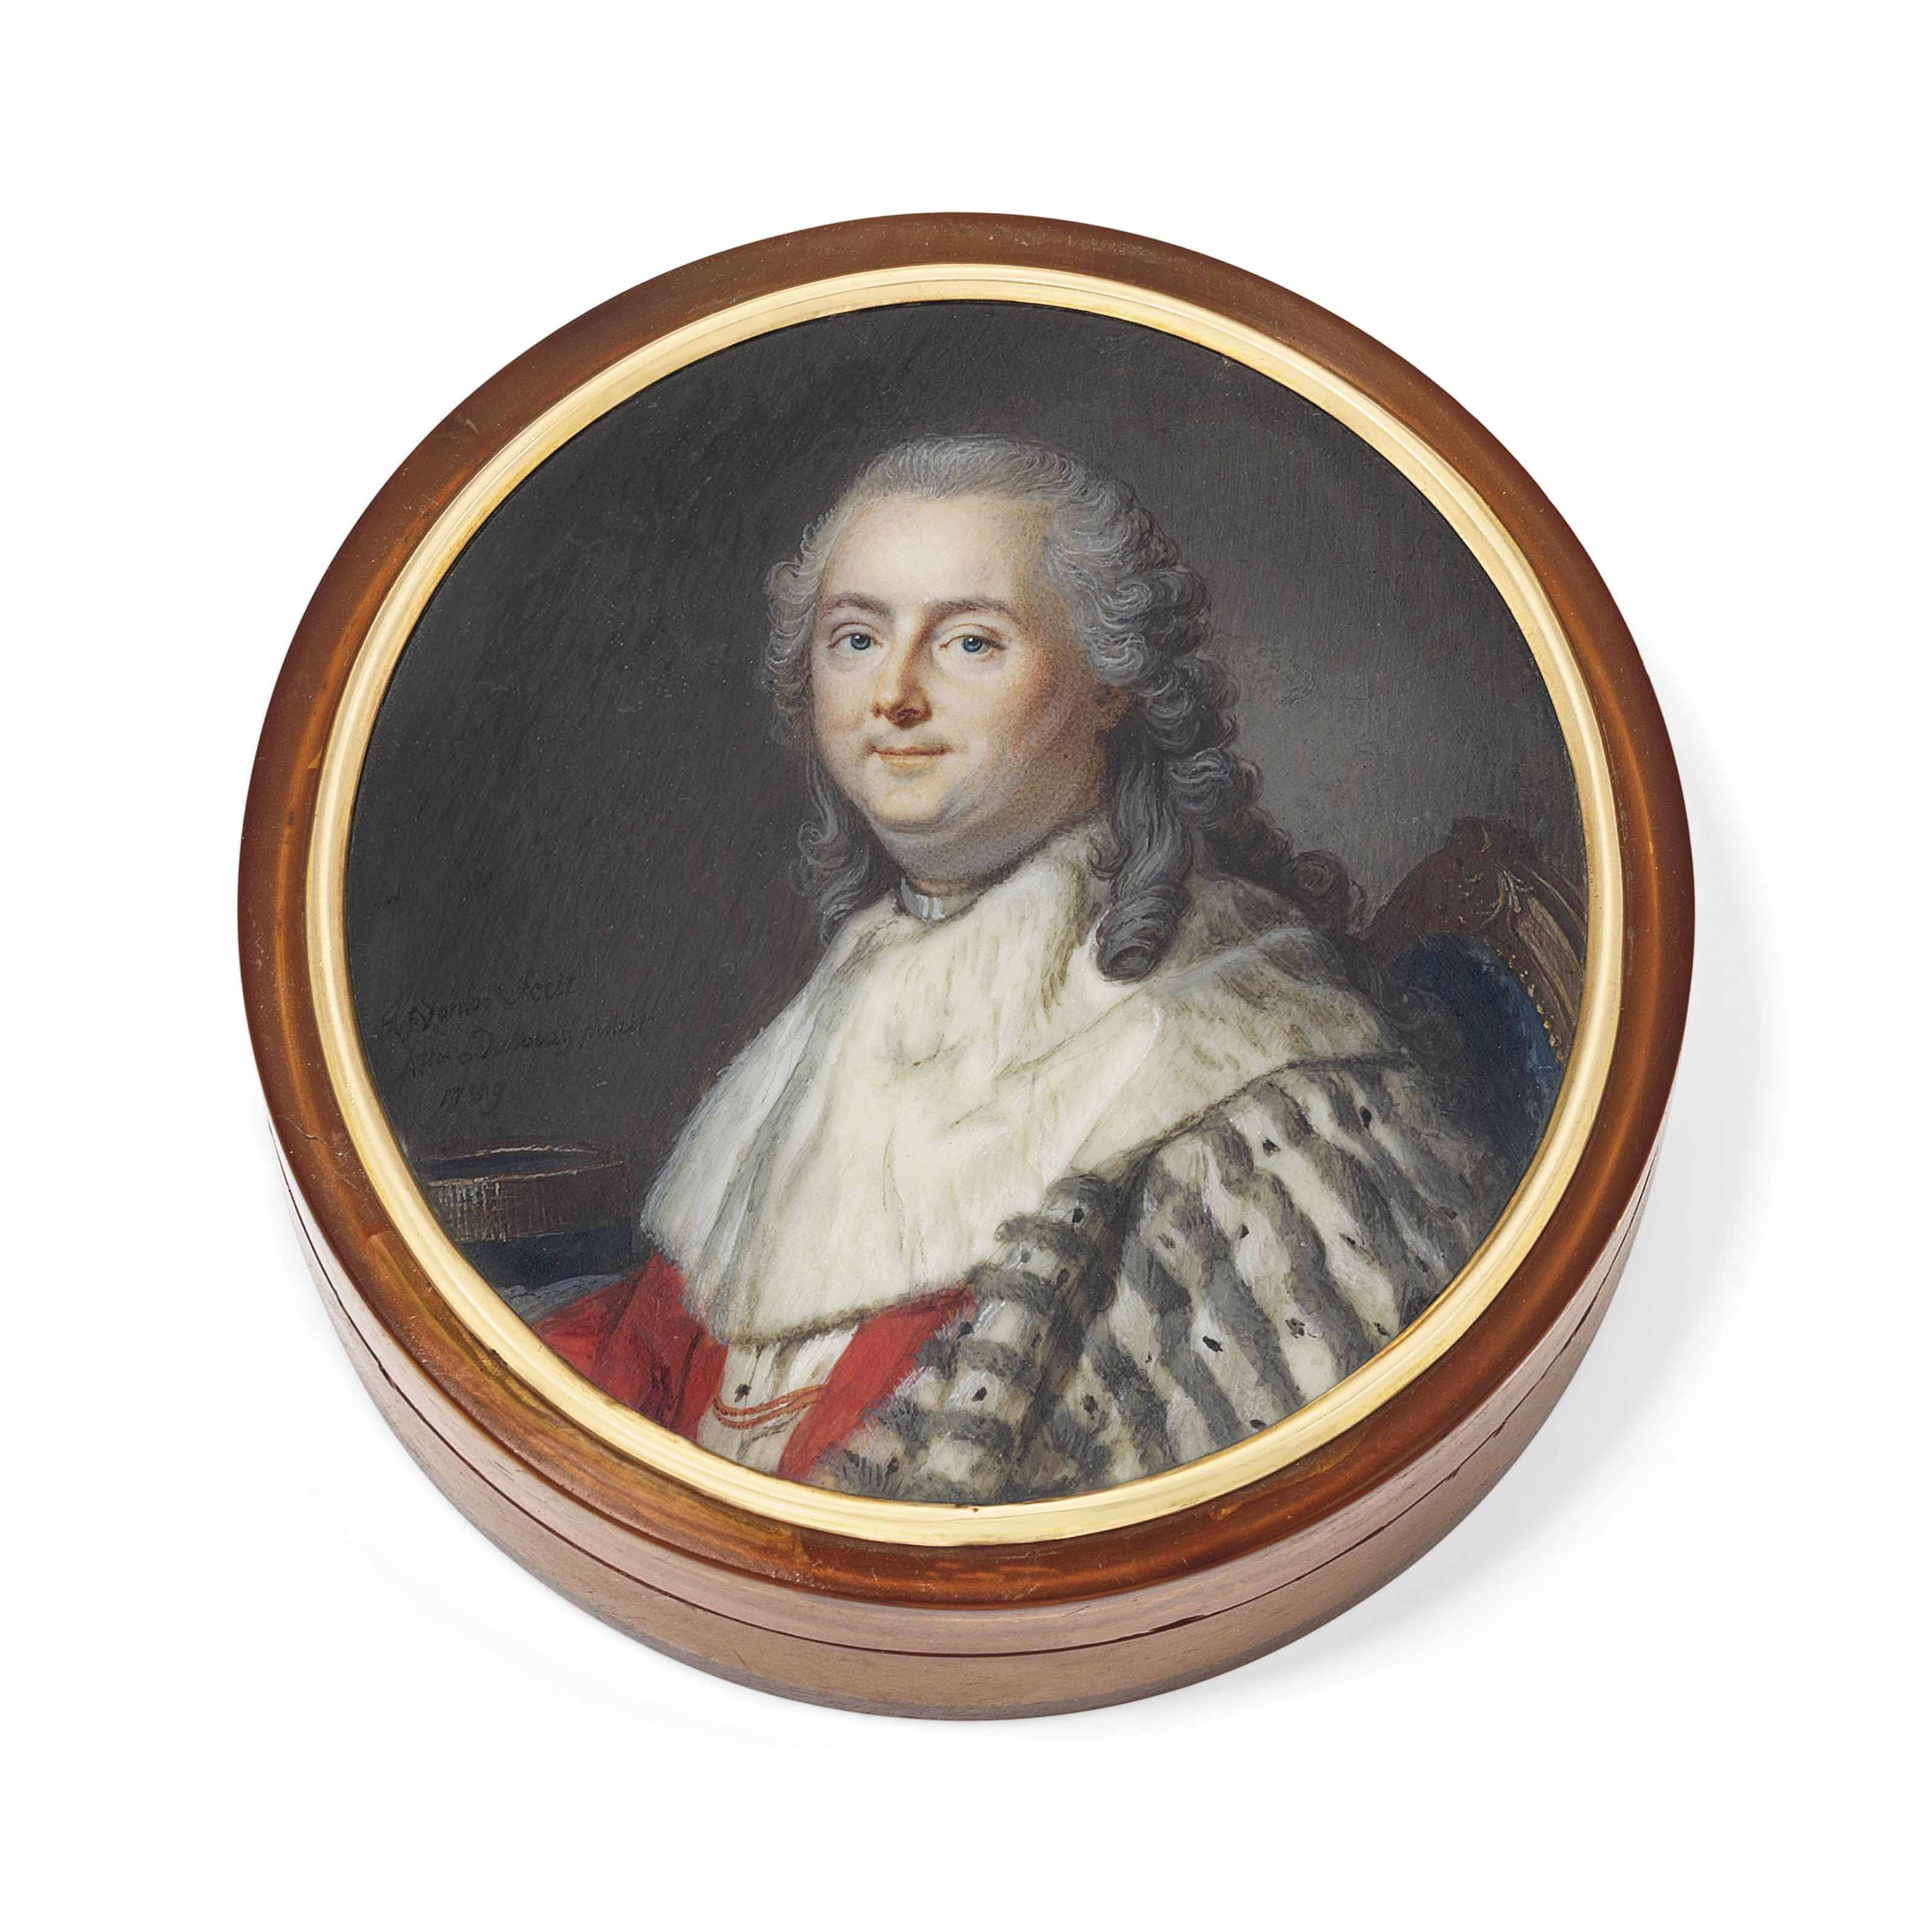 AUGUSTIN DUBOURG (FRENCH, 1750 - AFTER 1800) AFTER LOUIS MICHEL VAN LOO (FRENCH, 1707-1771)